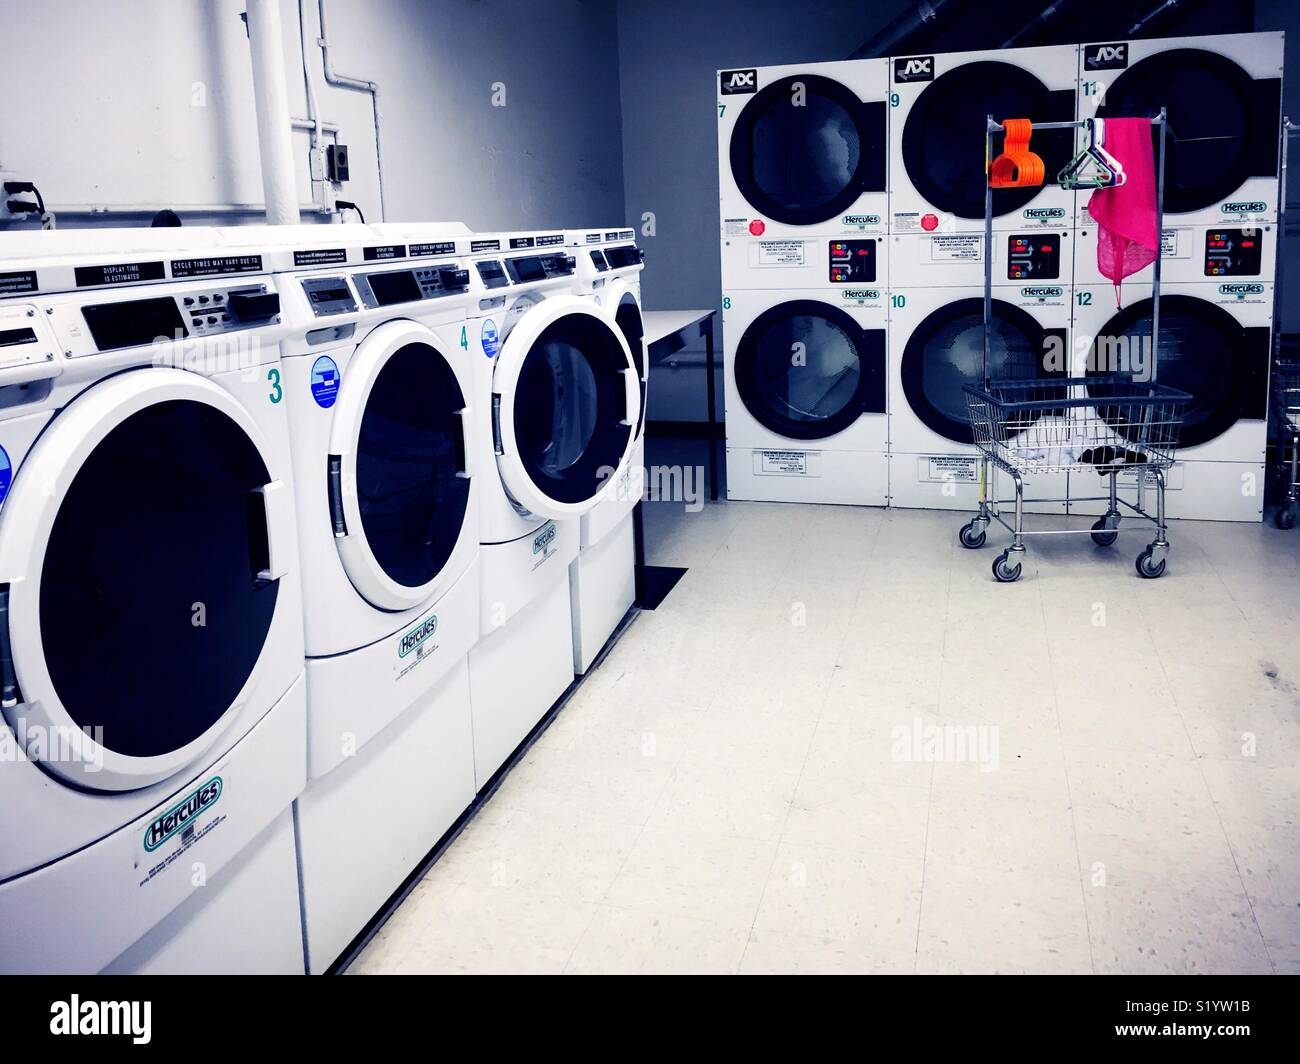 Frontloading washers and dryer's in a commercial laundromat, United States - Stock Image